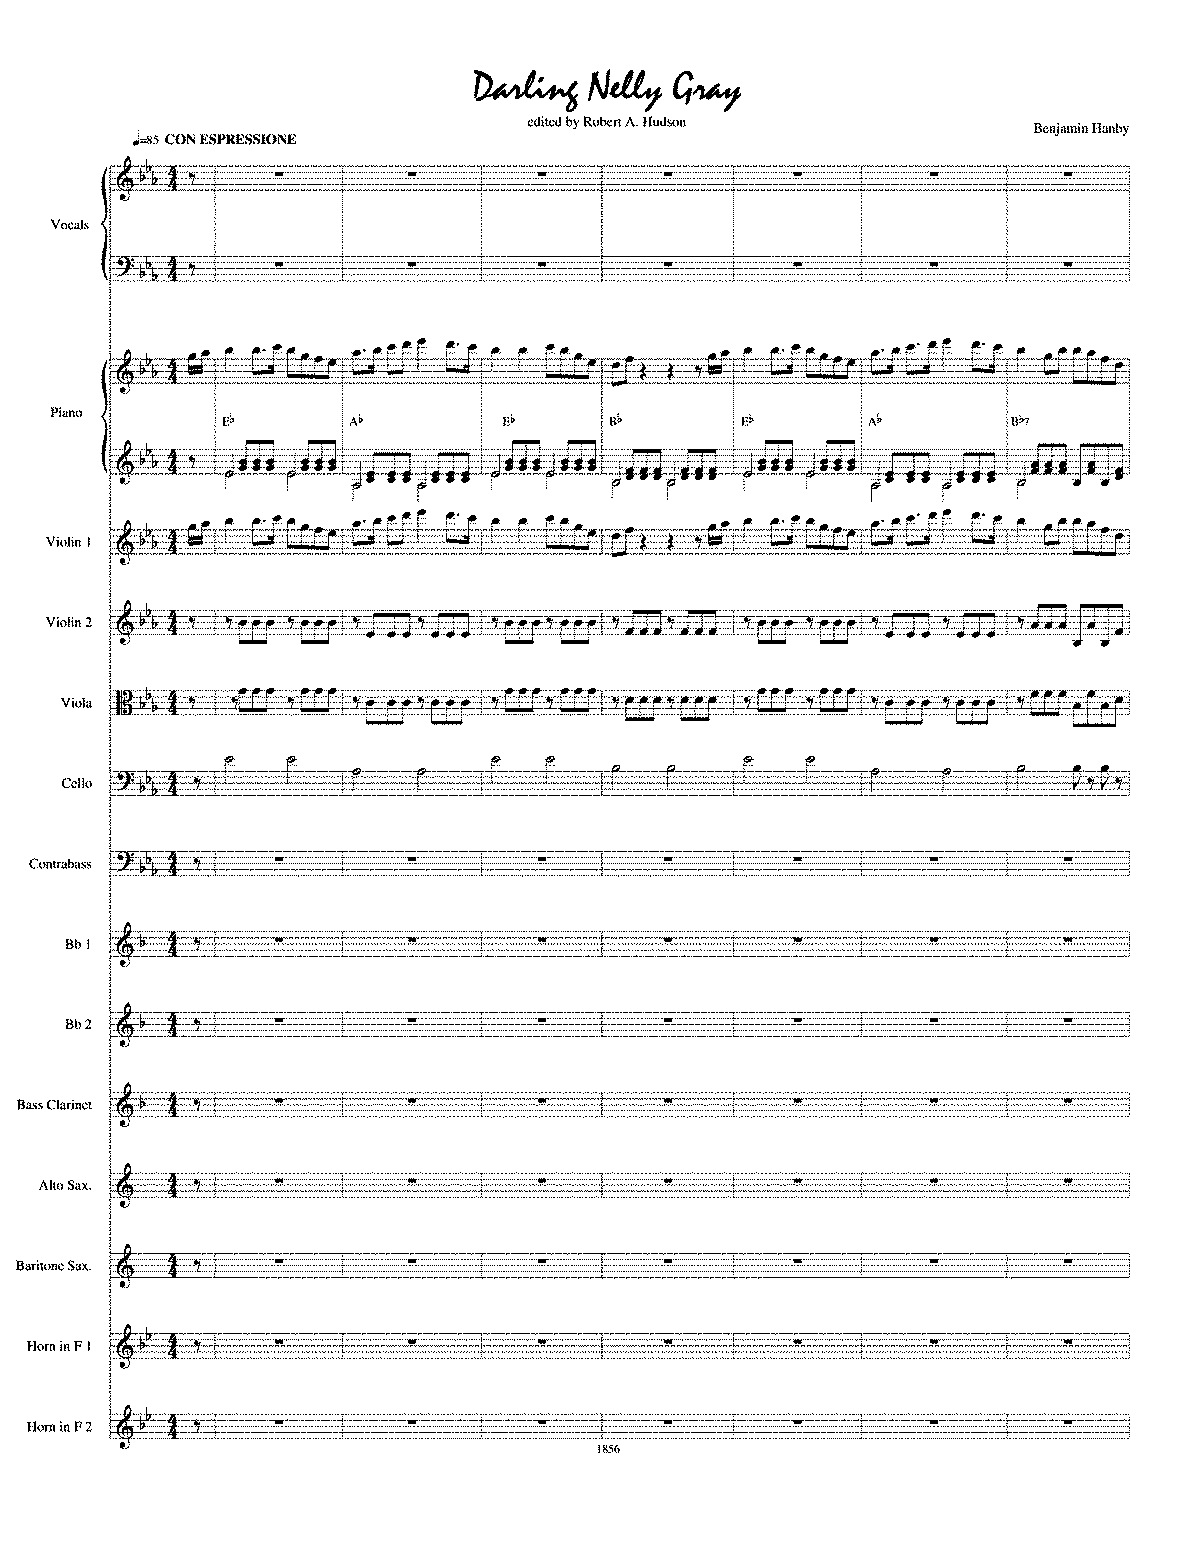 PMLP166293-Darling Nelly Gray - Conductors Score.pdf